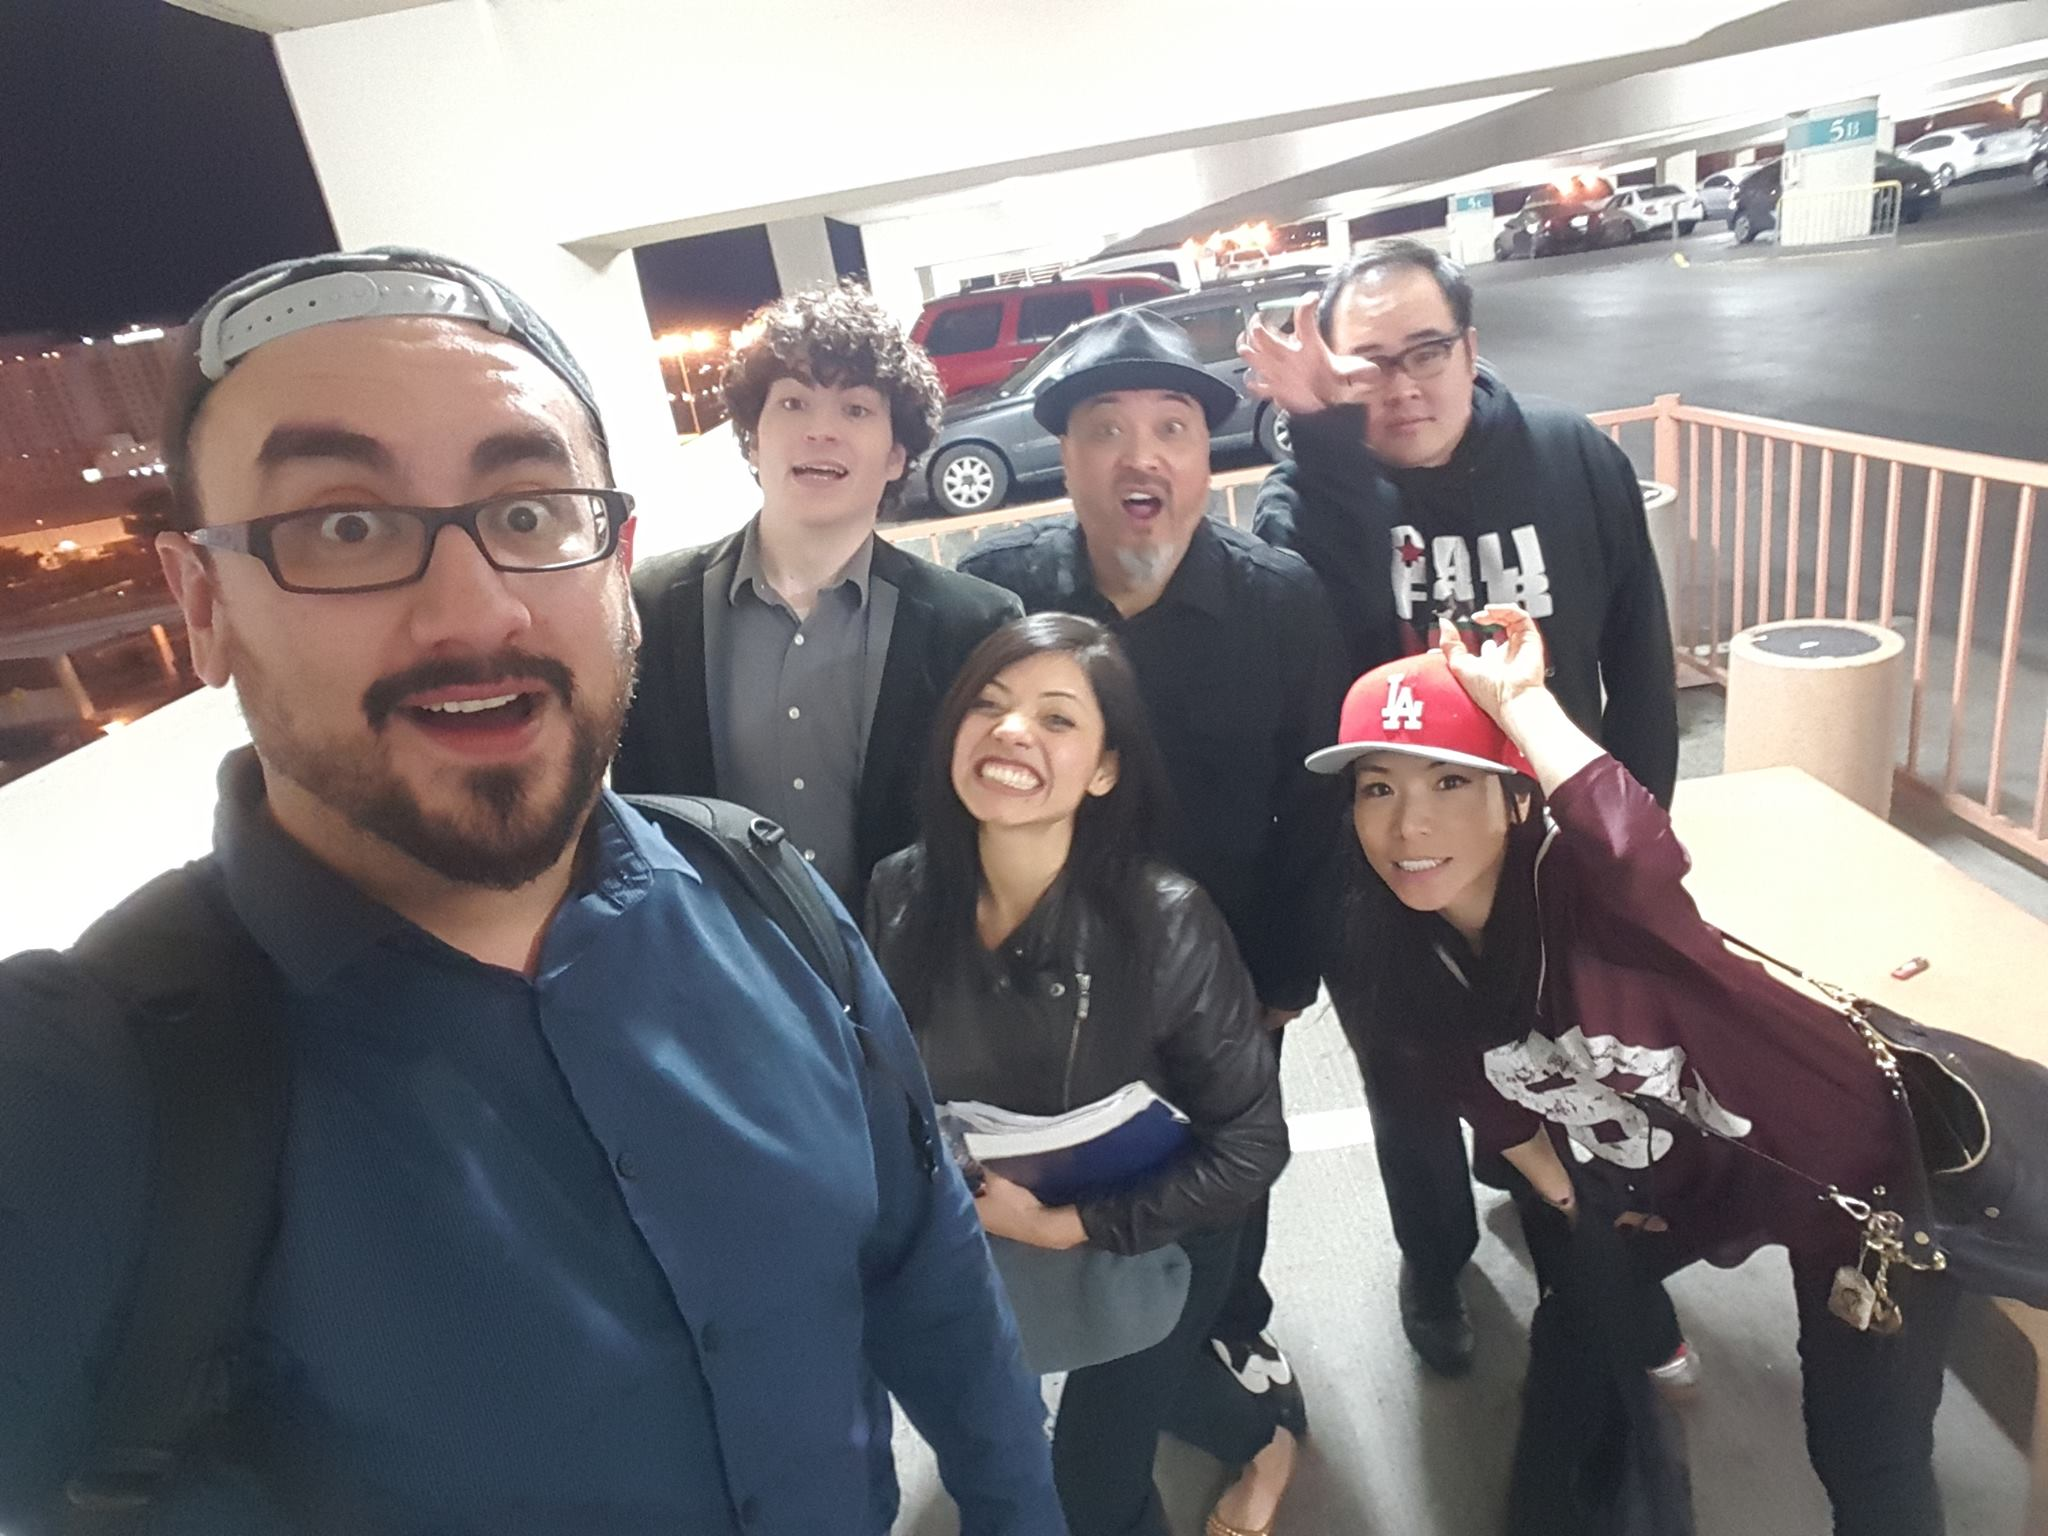 #42 The Chat Snap with Freddy Correa - Aiko Tanaka, Lissy Correa, Brent Mukai, Adam Barr, Charlie Stone, and Joe Caliz